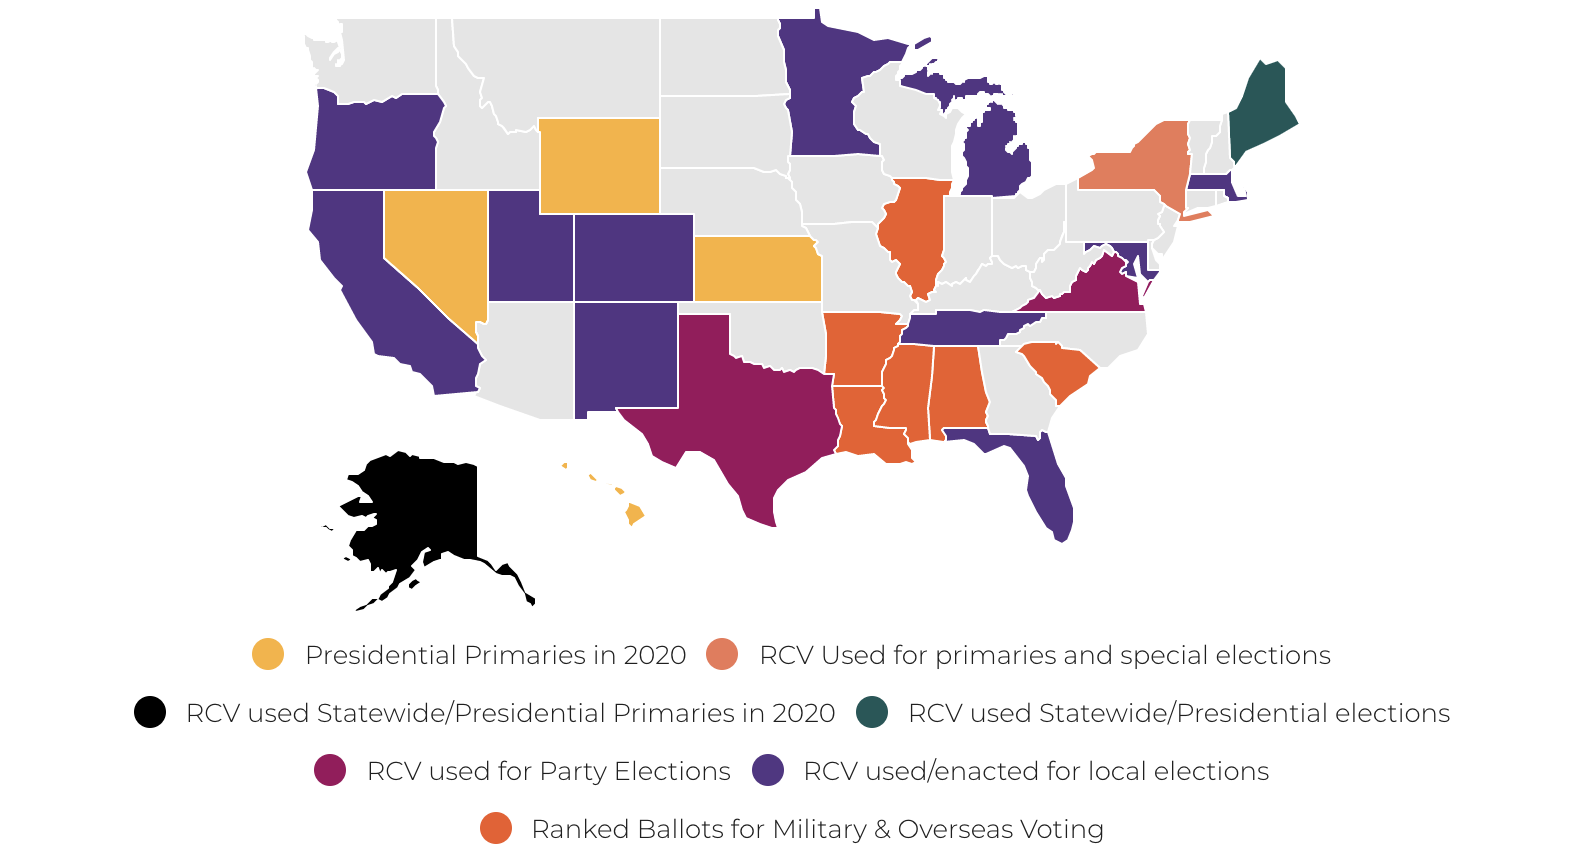 What states use RCV?